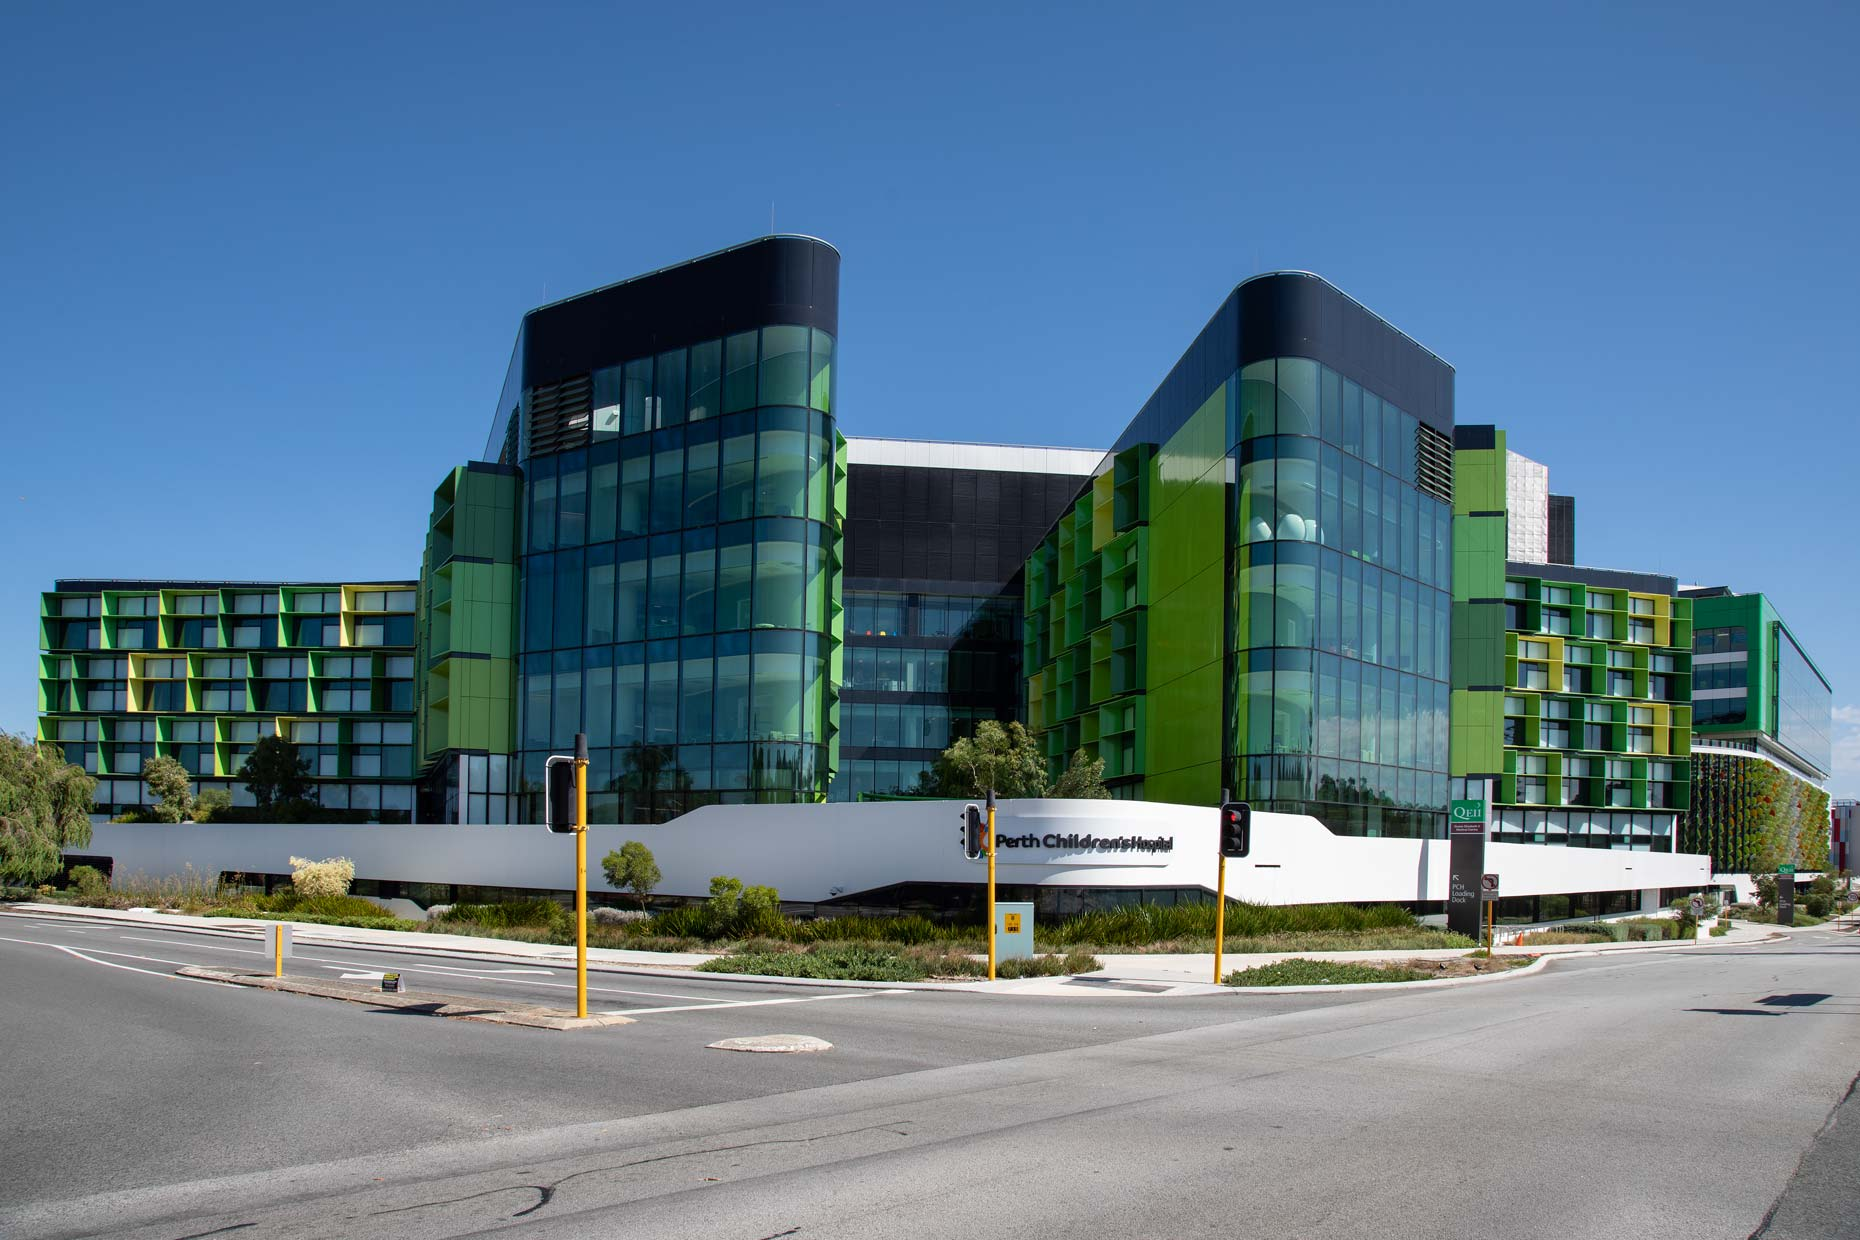 Perth-Childrens-Hospital_exterior_corner-facade_0N8A9897